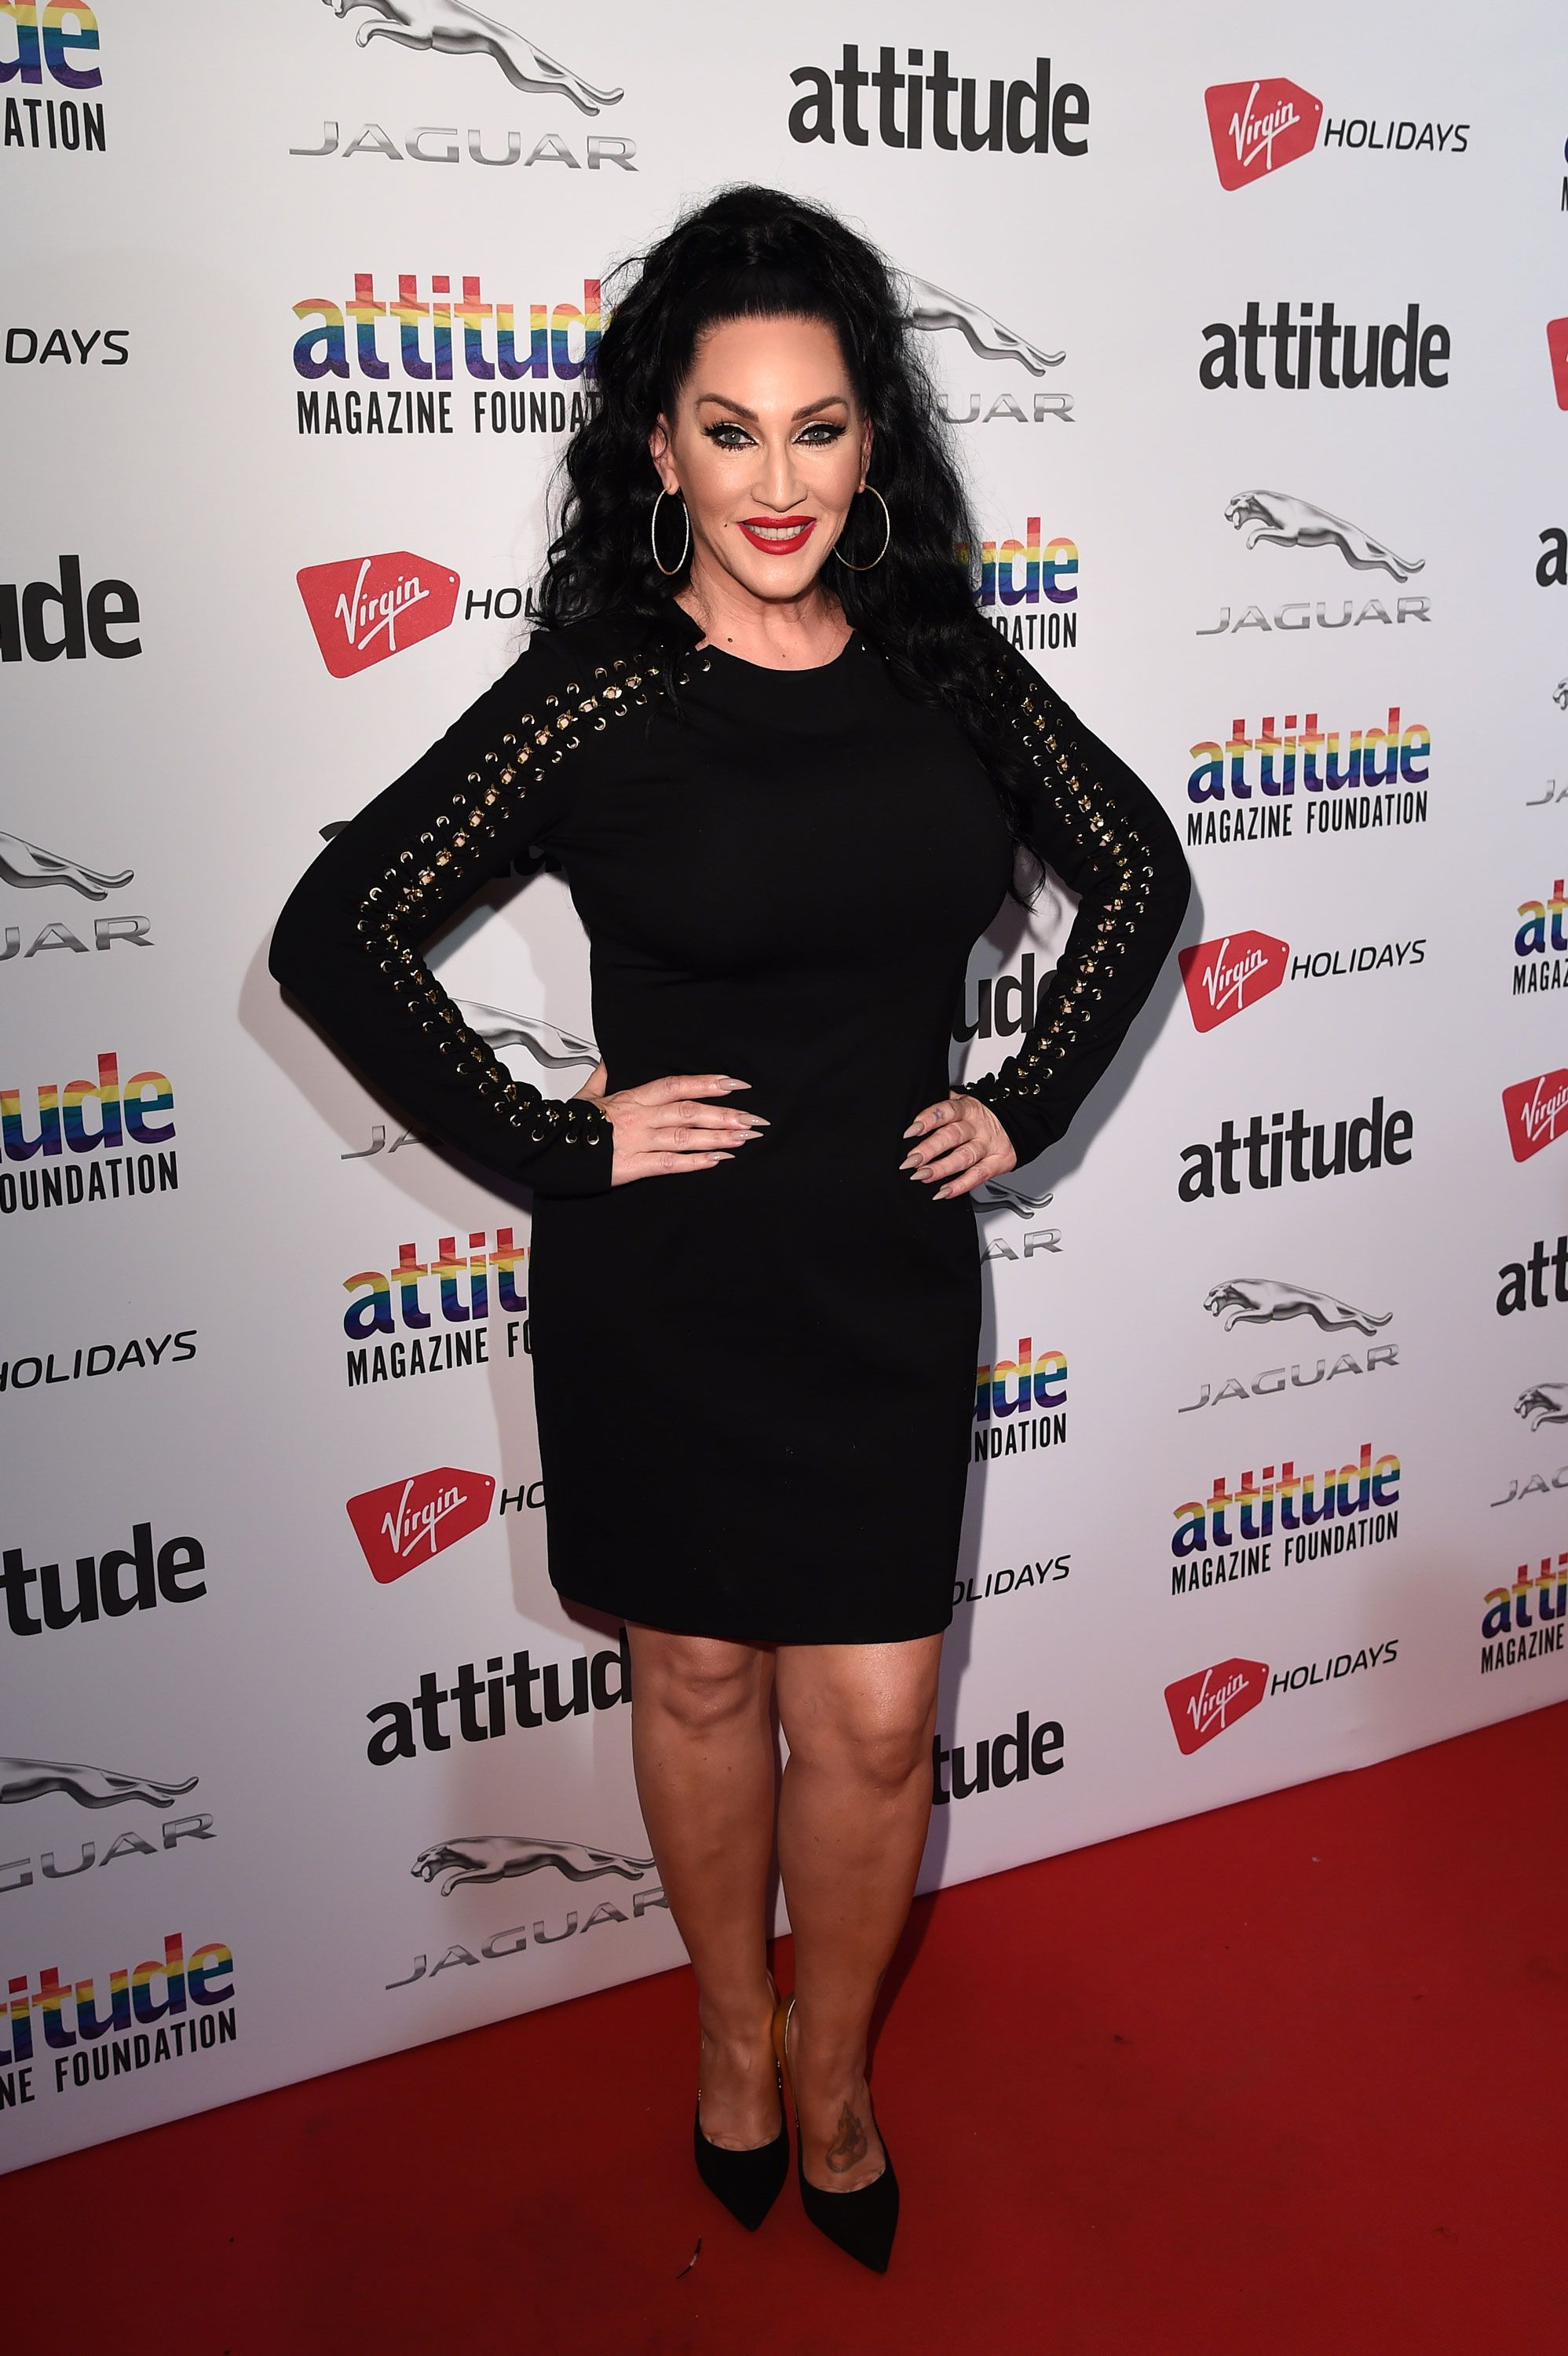 Michelle Visage reveals the celebrity judges she wants for RuPaul's Drag Race UK season 2